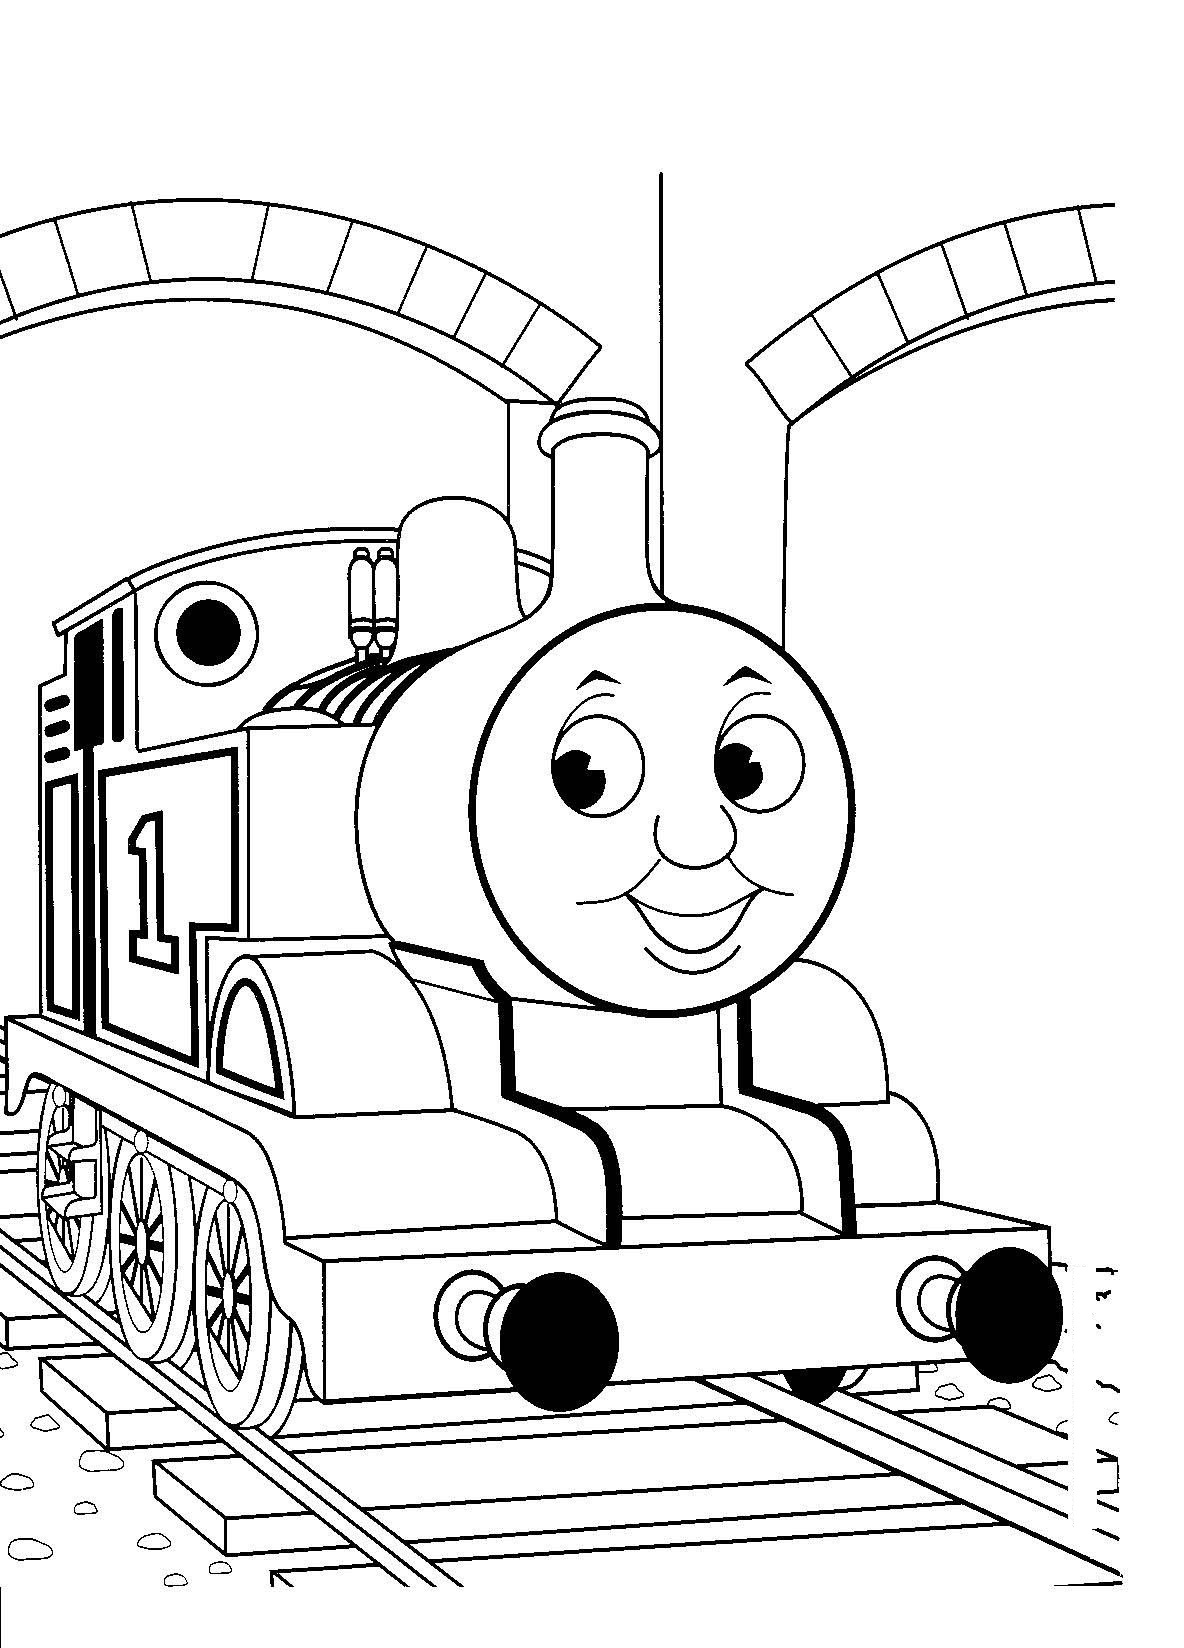 Genius image with printable train coloring pages